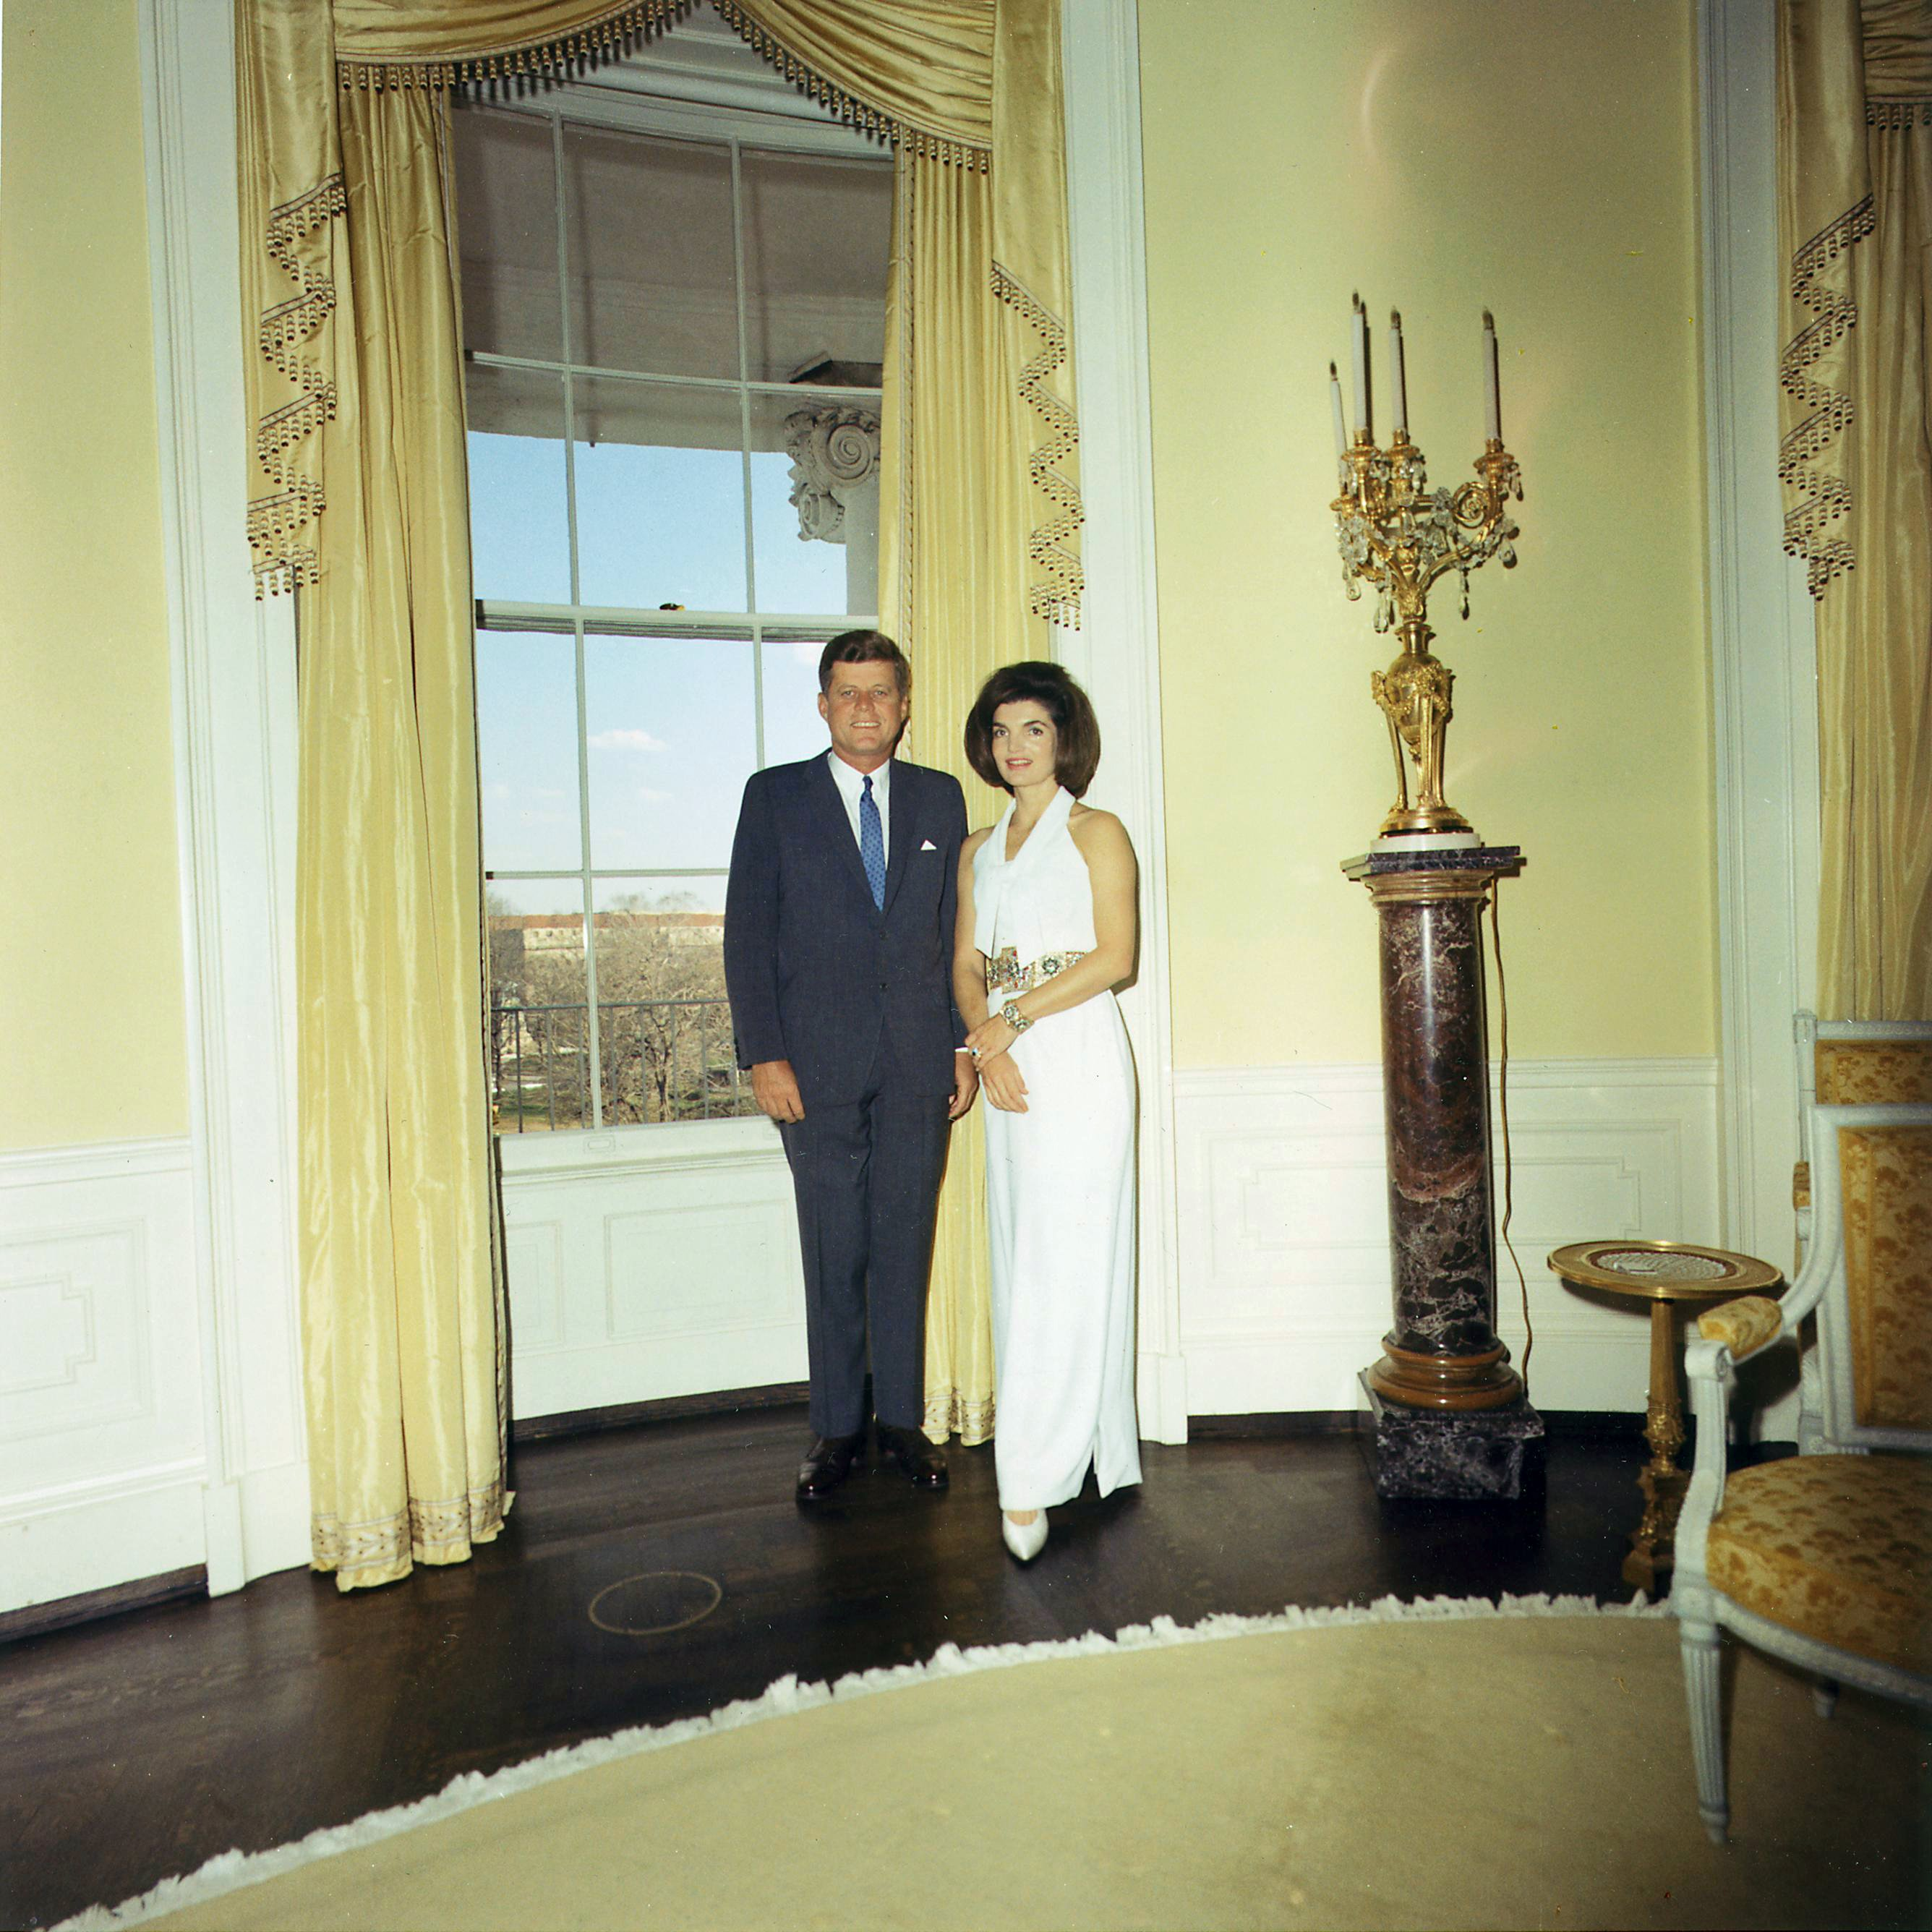 Jfk Oval Office File Kennedys In The Yellow Oval Room 3 28 63 Jpg